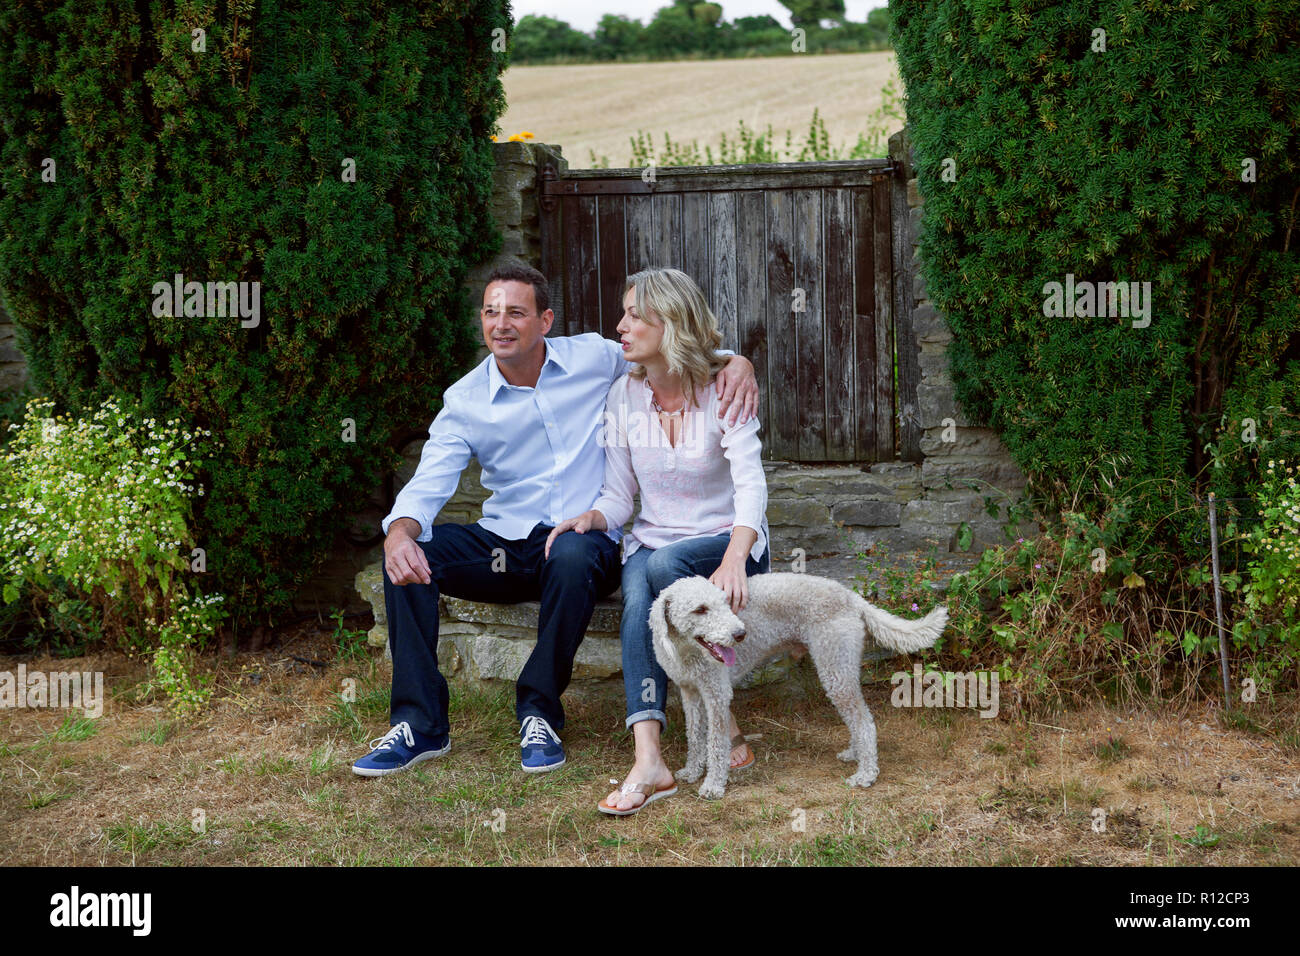 Romantic mature couple with dog sitting in garden Stock Photo